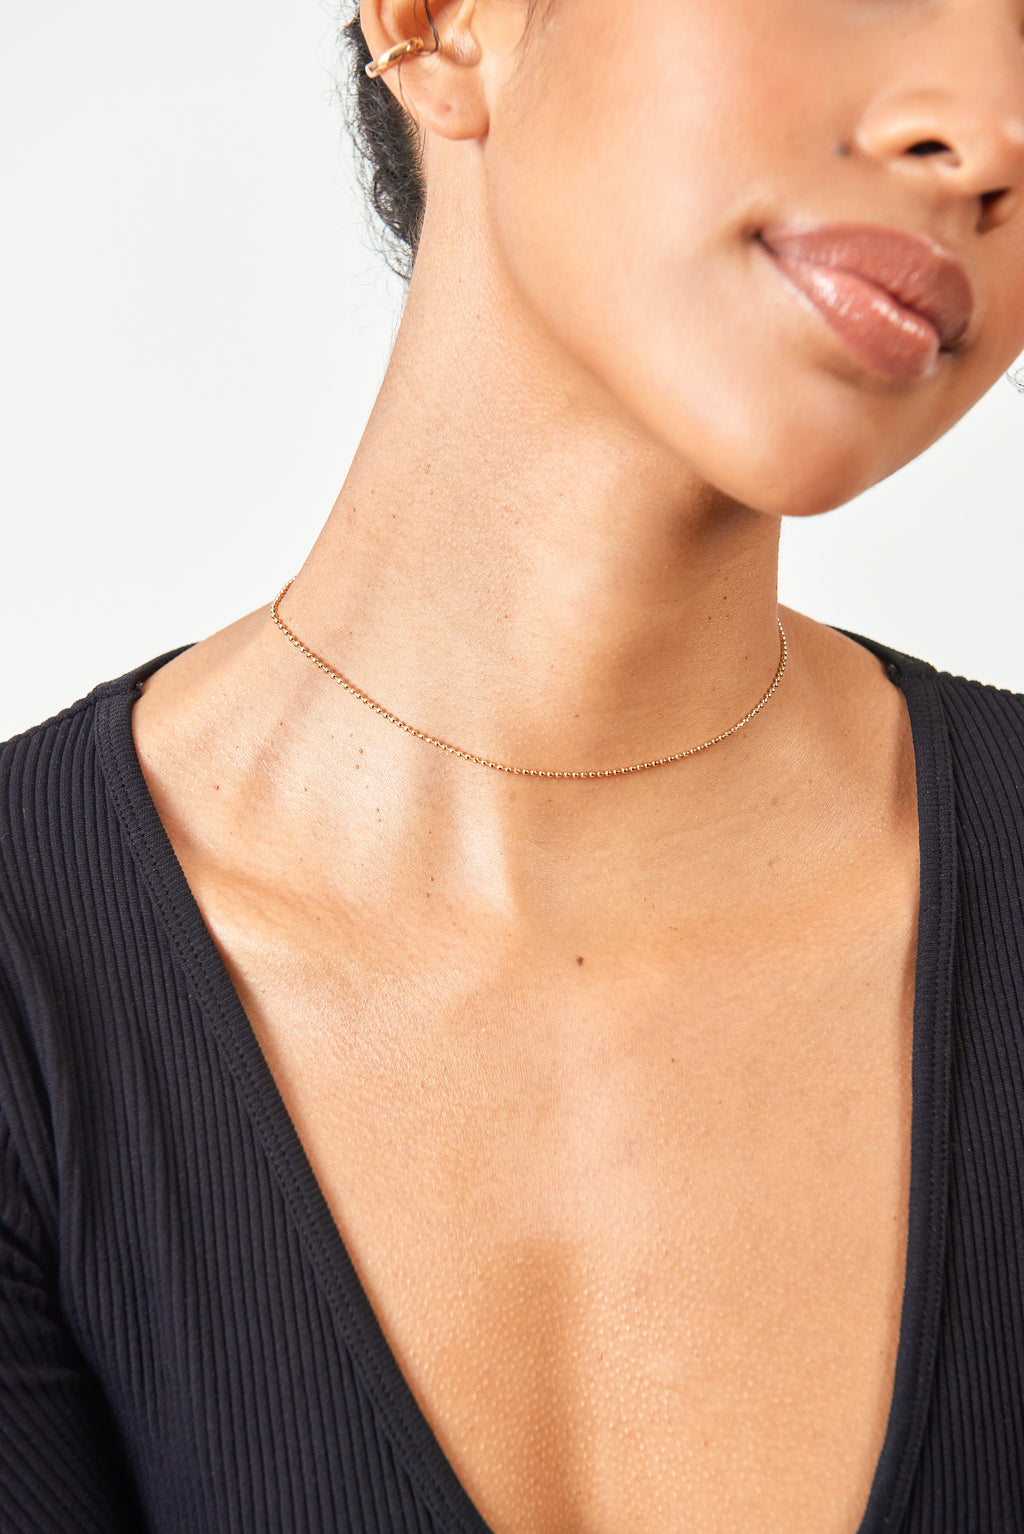 SANCTUAIRE-VIVIANA-DONTANON-SMALL-BEADED-CHOKER-GOLD-SUSTAINABLE-HANDCRAFTED